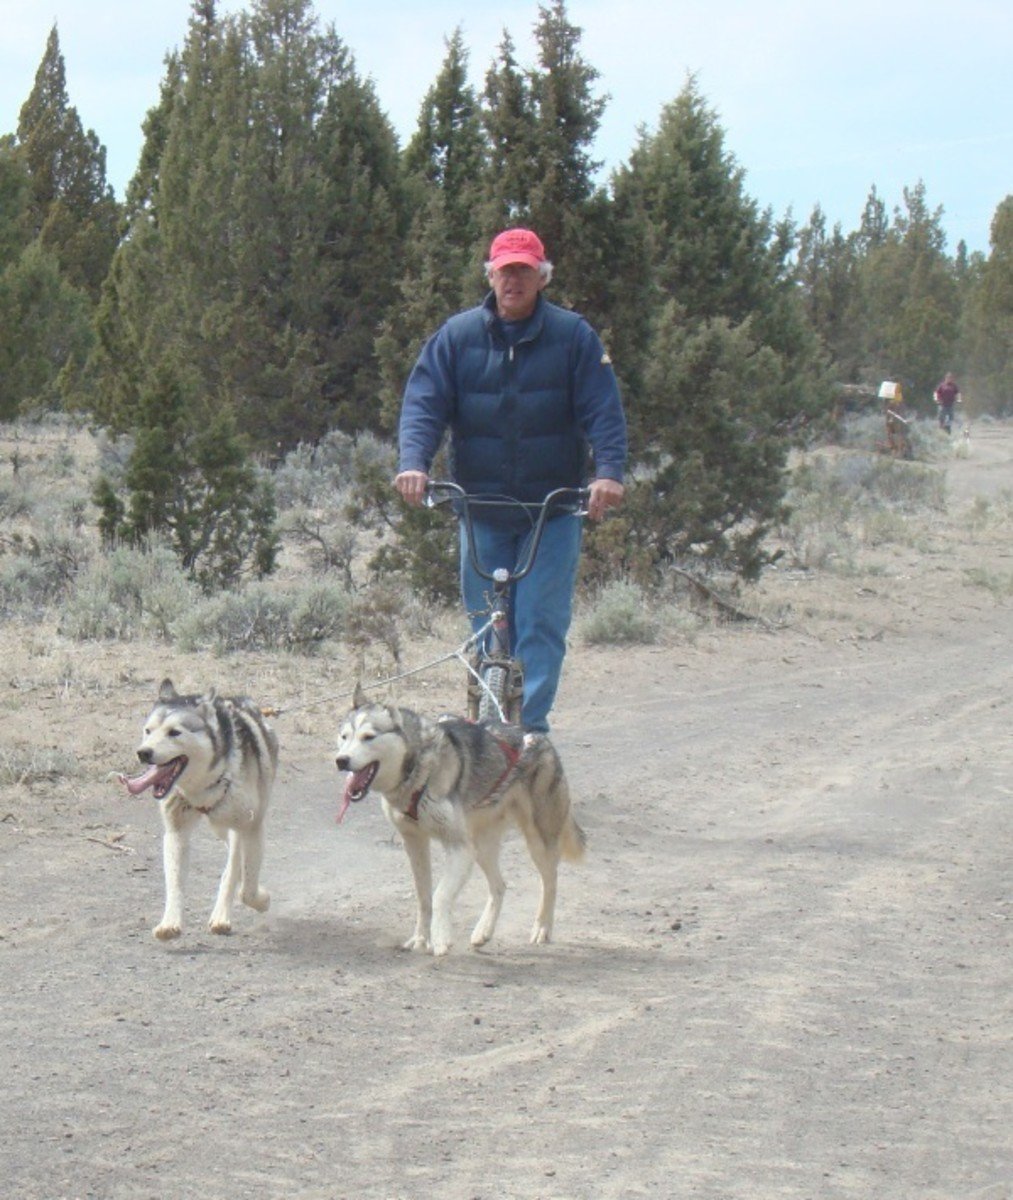 Bob running 2 Siberians on a dog scooter.